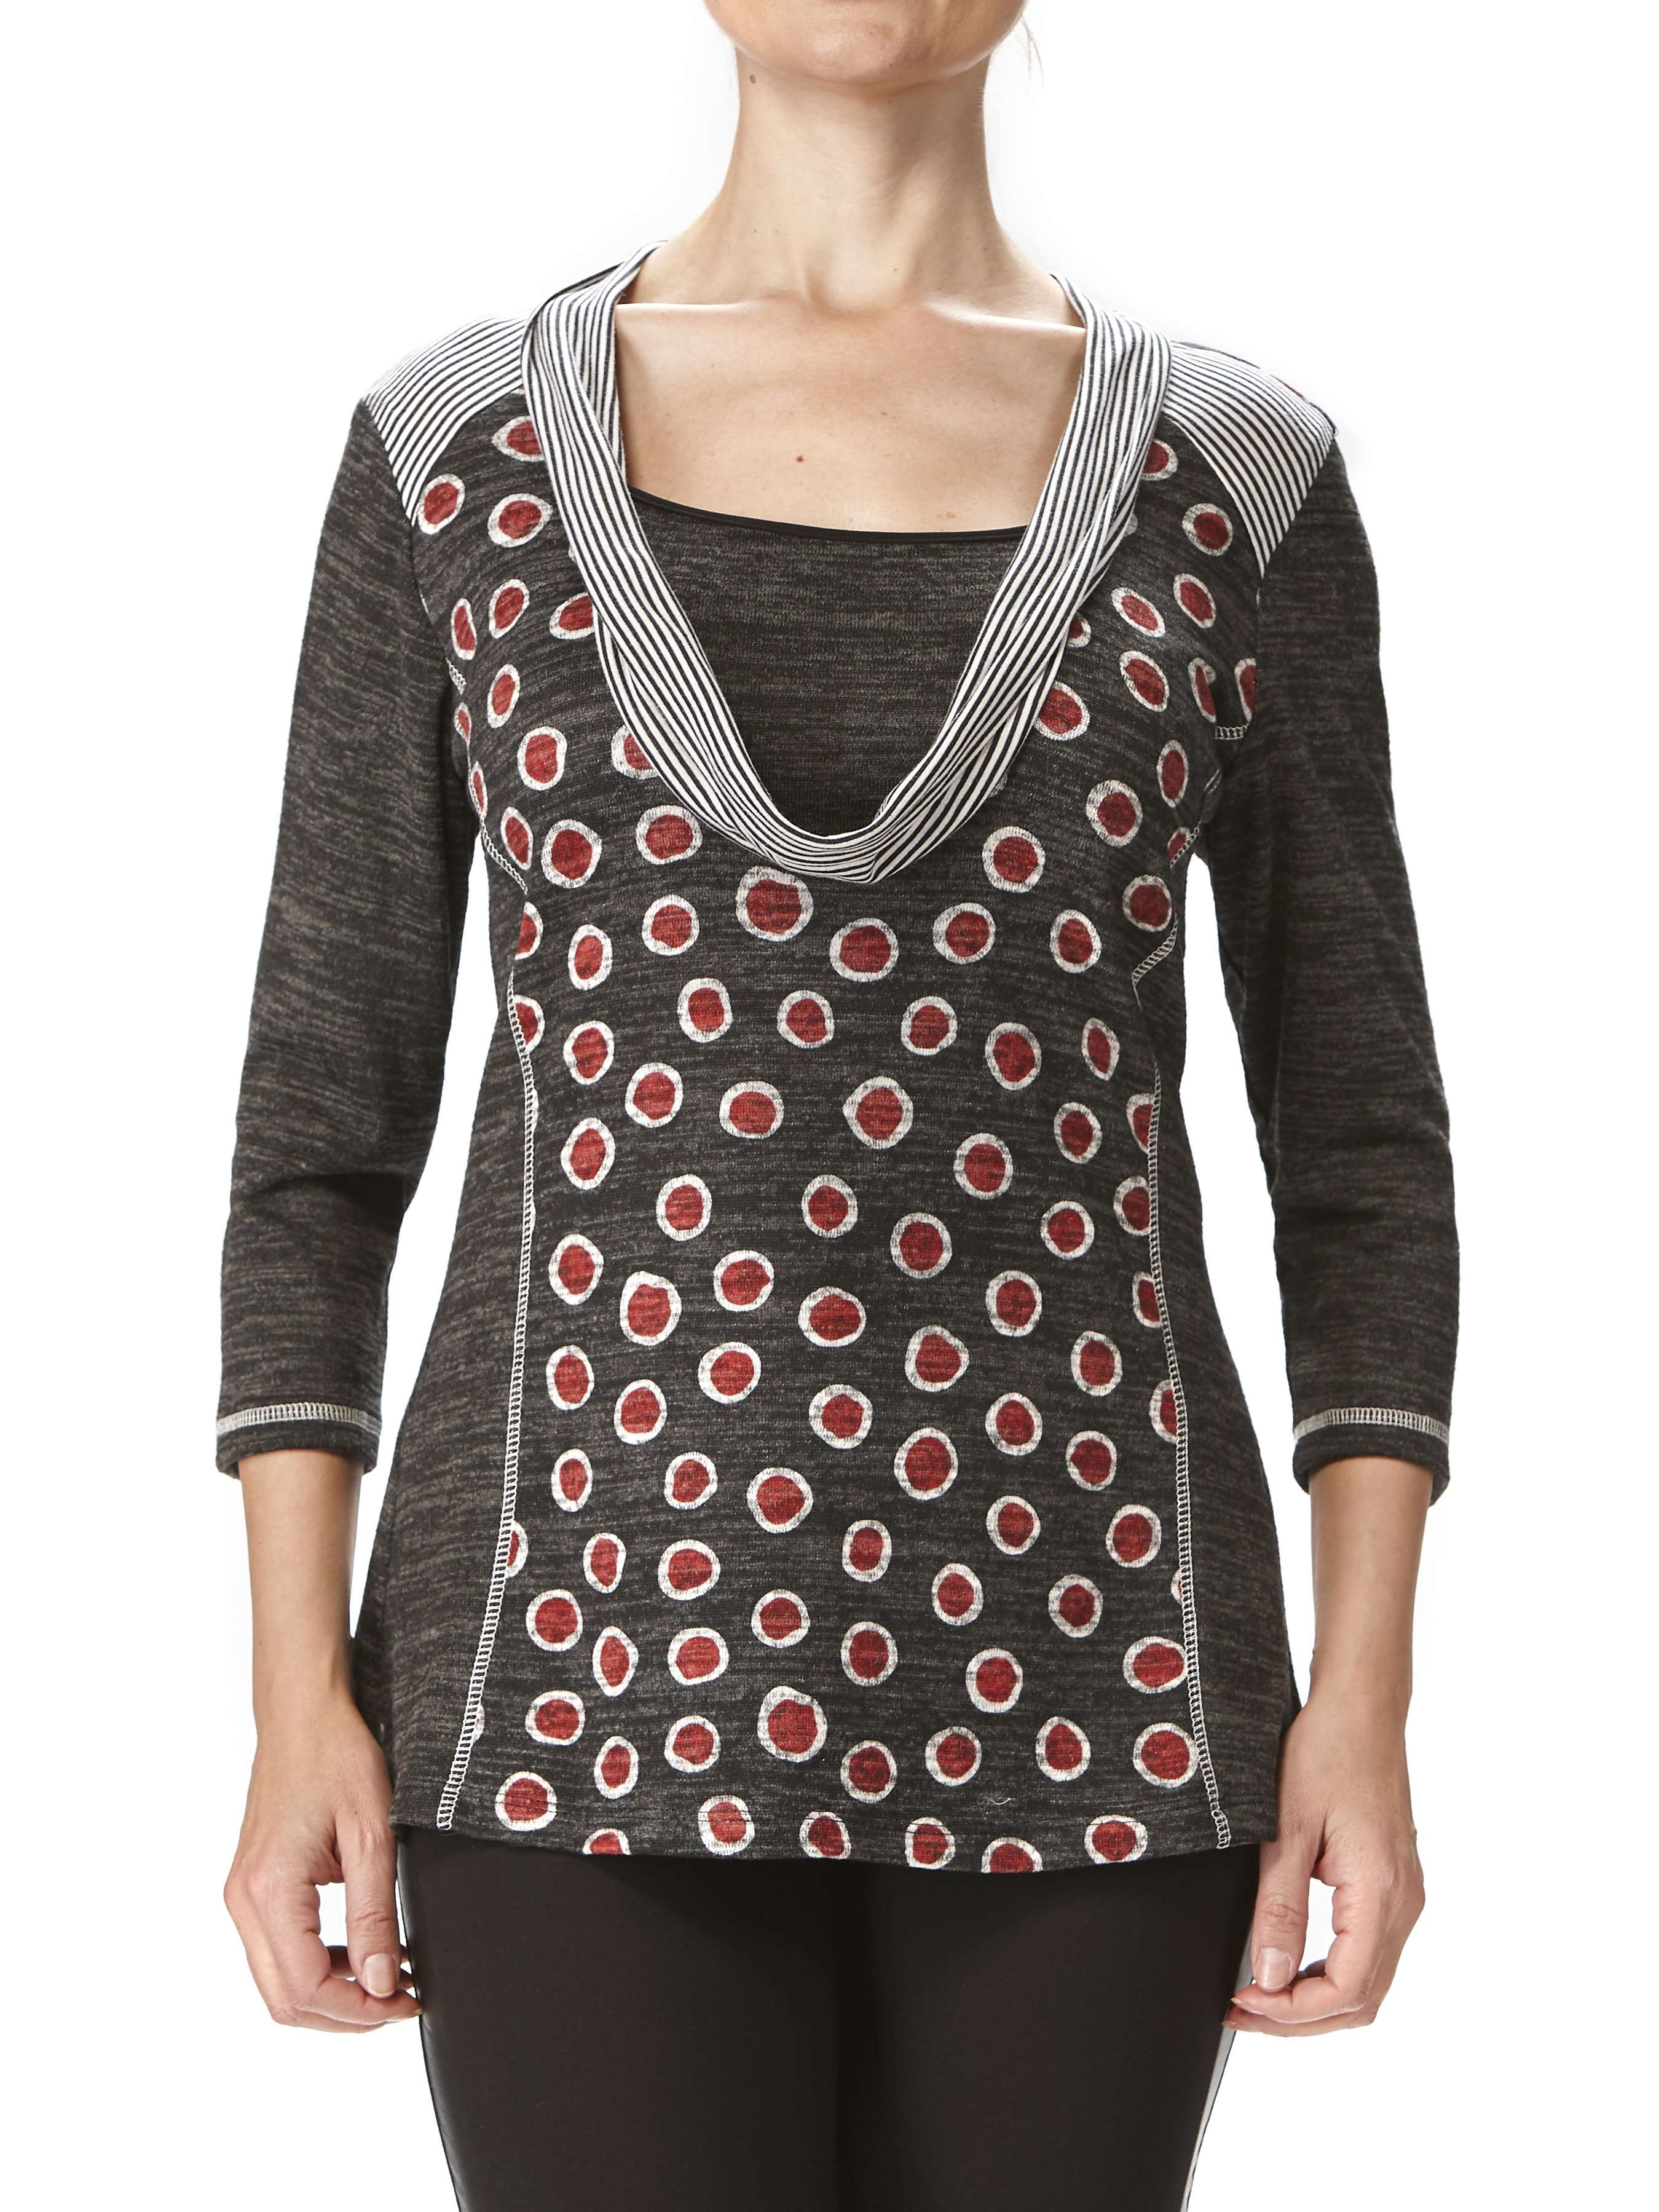 Women's Sweaters on Sale Red and Charcoal Quality Fit - Made in Canada - Yvonne Marie - Yvonne Marie